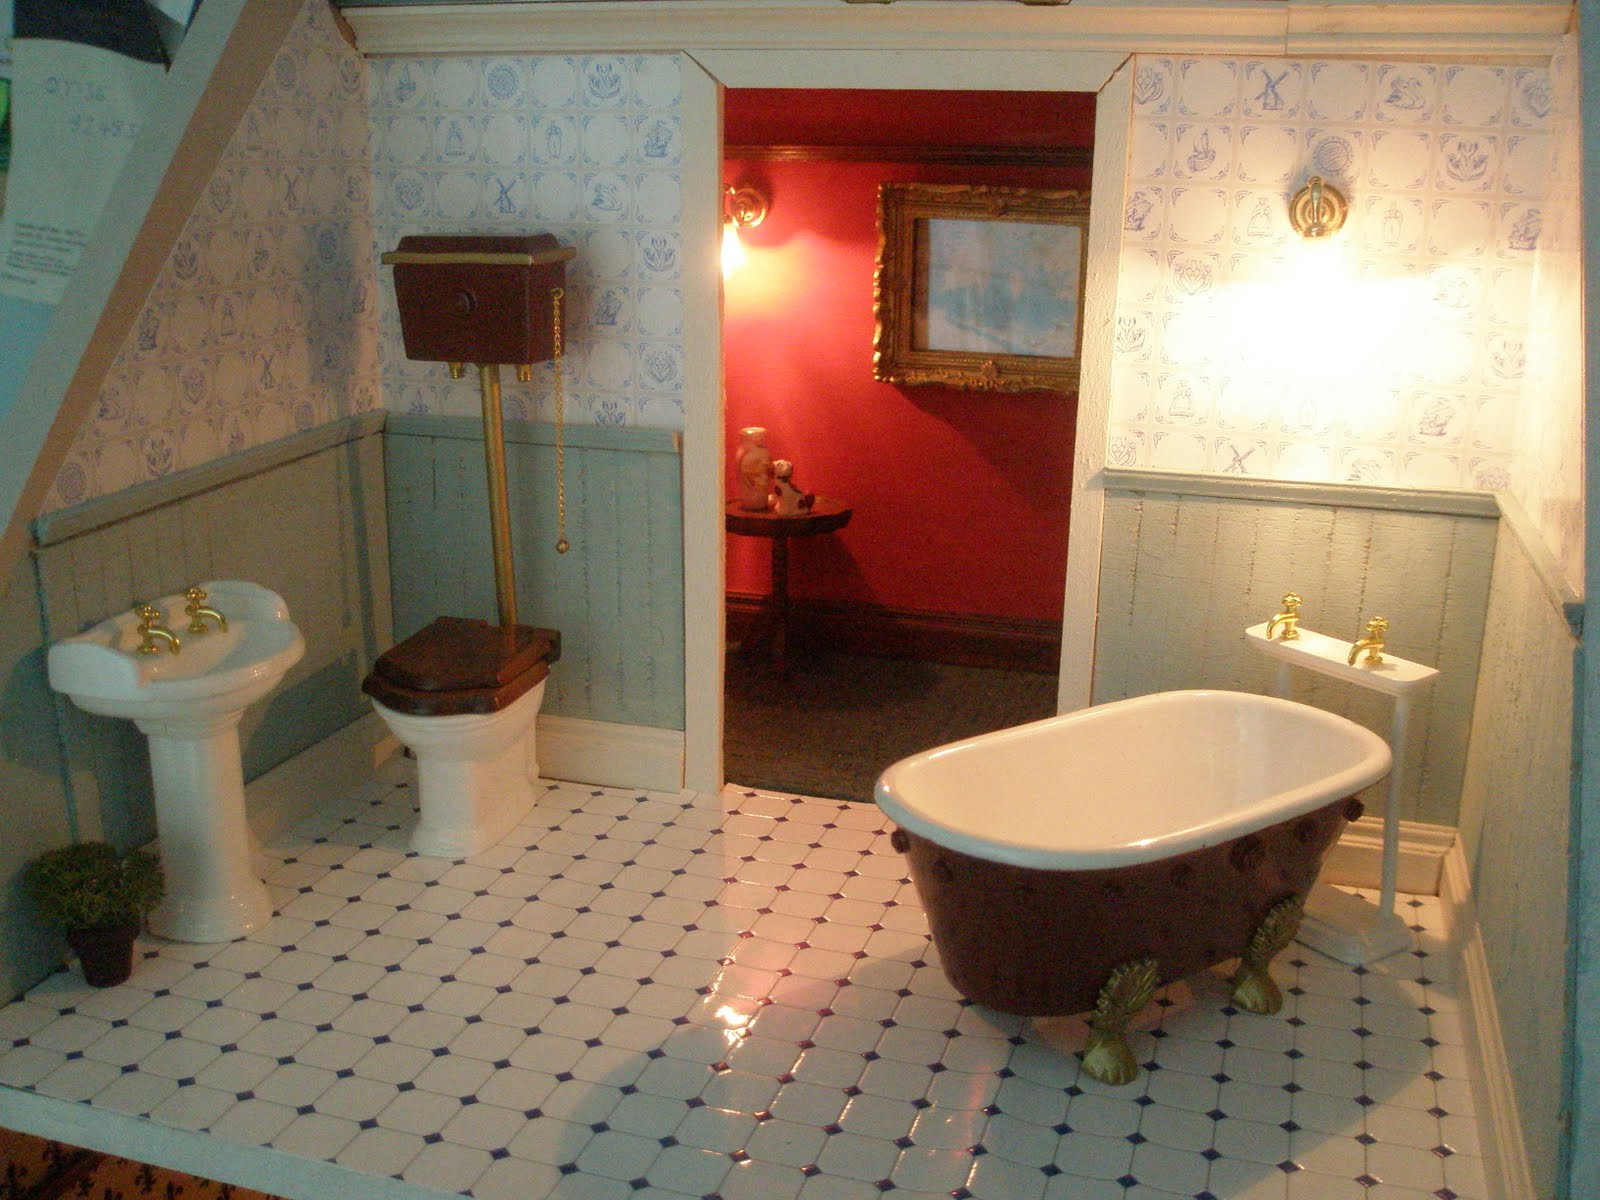 Julie's Doll House: Bathroom: Floor